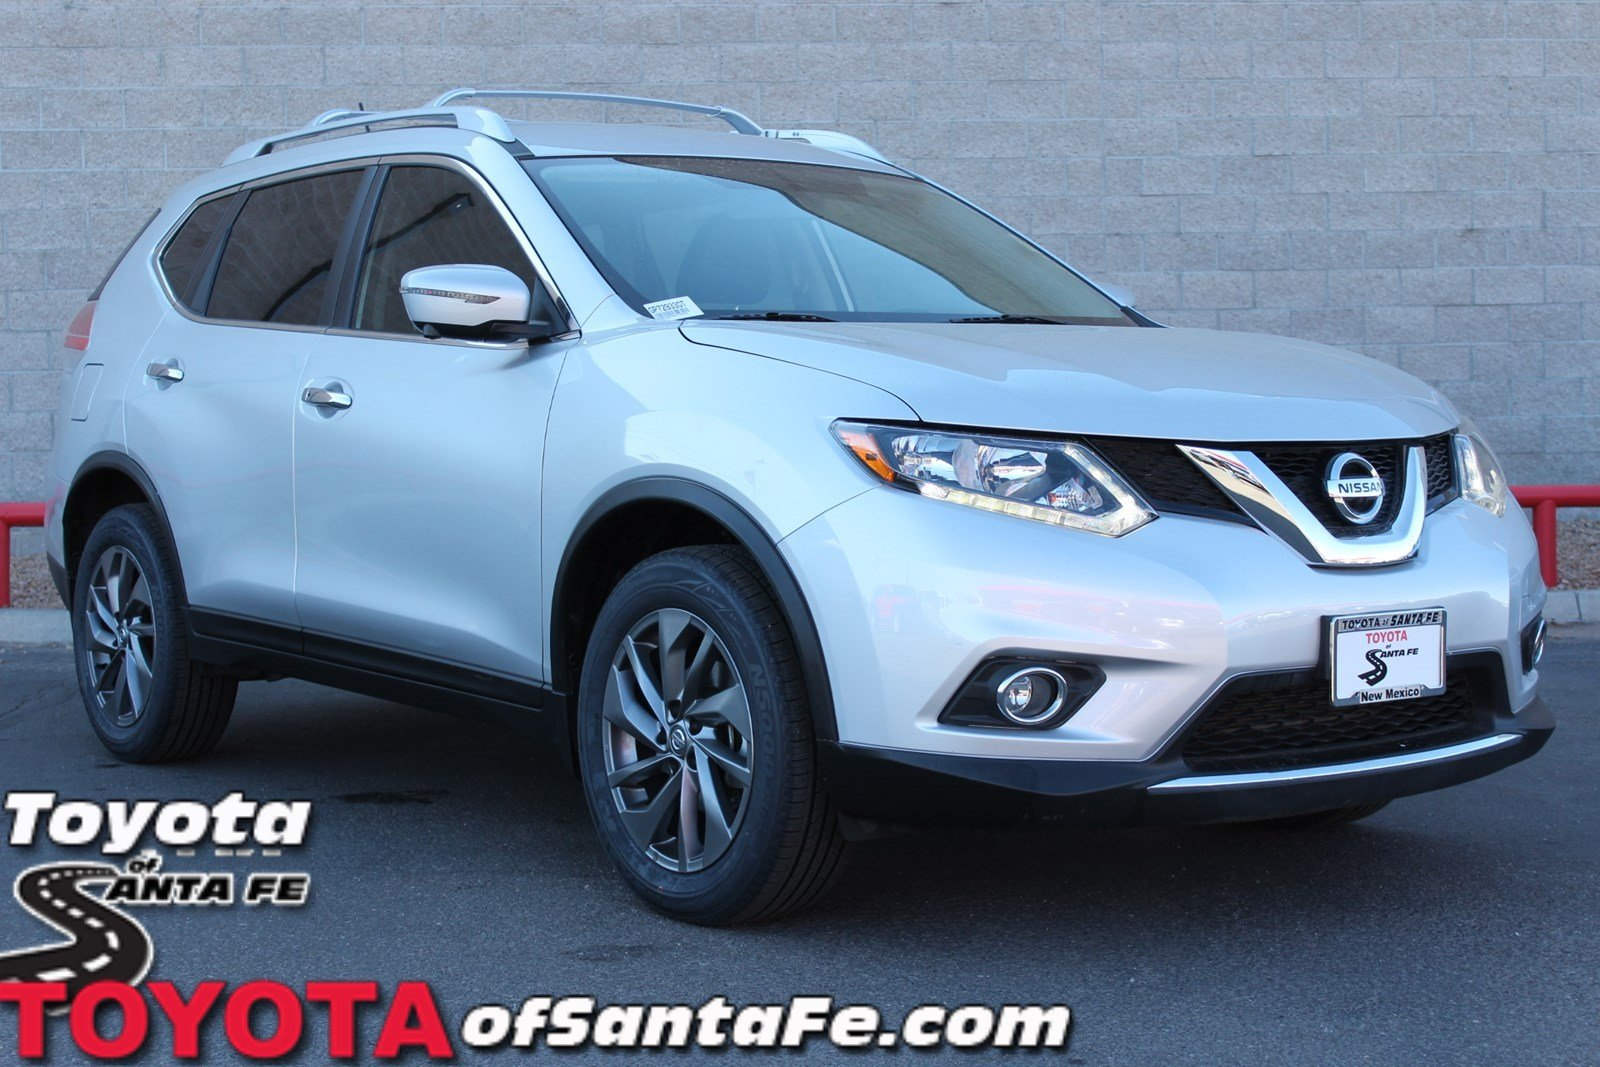 Pre-Owned 2016 Nissan Rogue SL With Navigation & AWD GP729330T